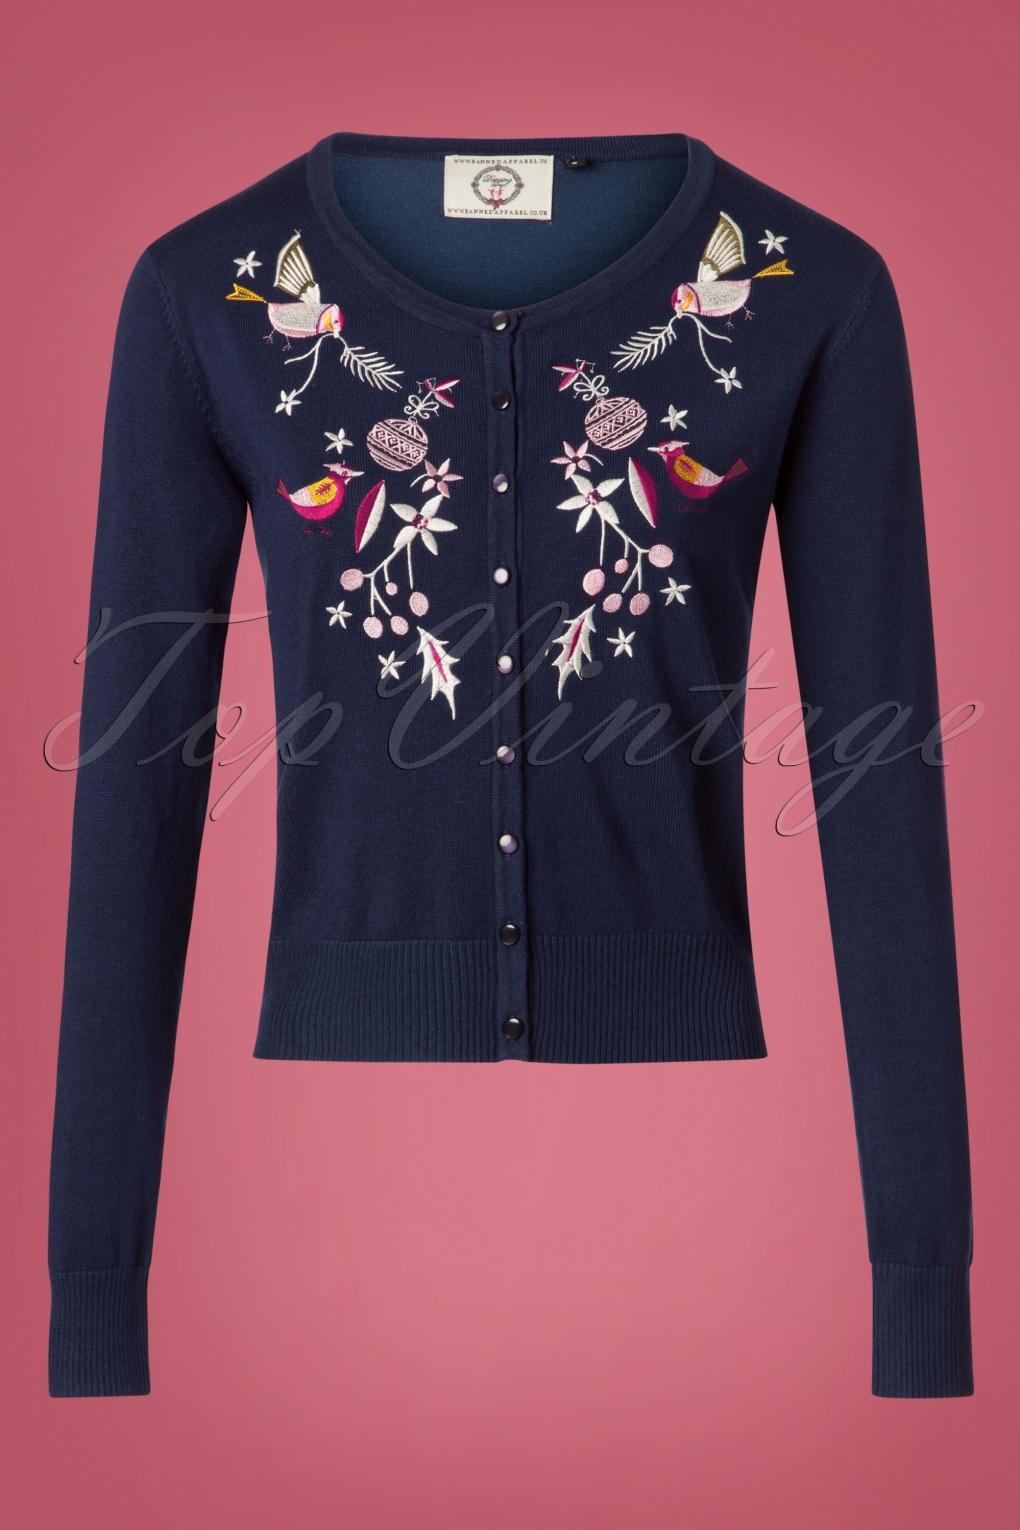 Vintage Christmas Dress | Party Dresses | Night Out Outfits 50s Christmas Bird Cardigan in Navy £36.73 AT vintagedancer.com